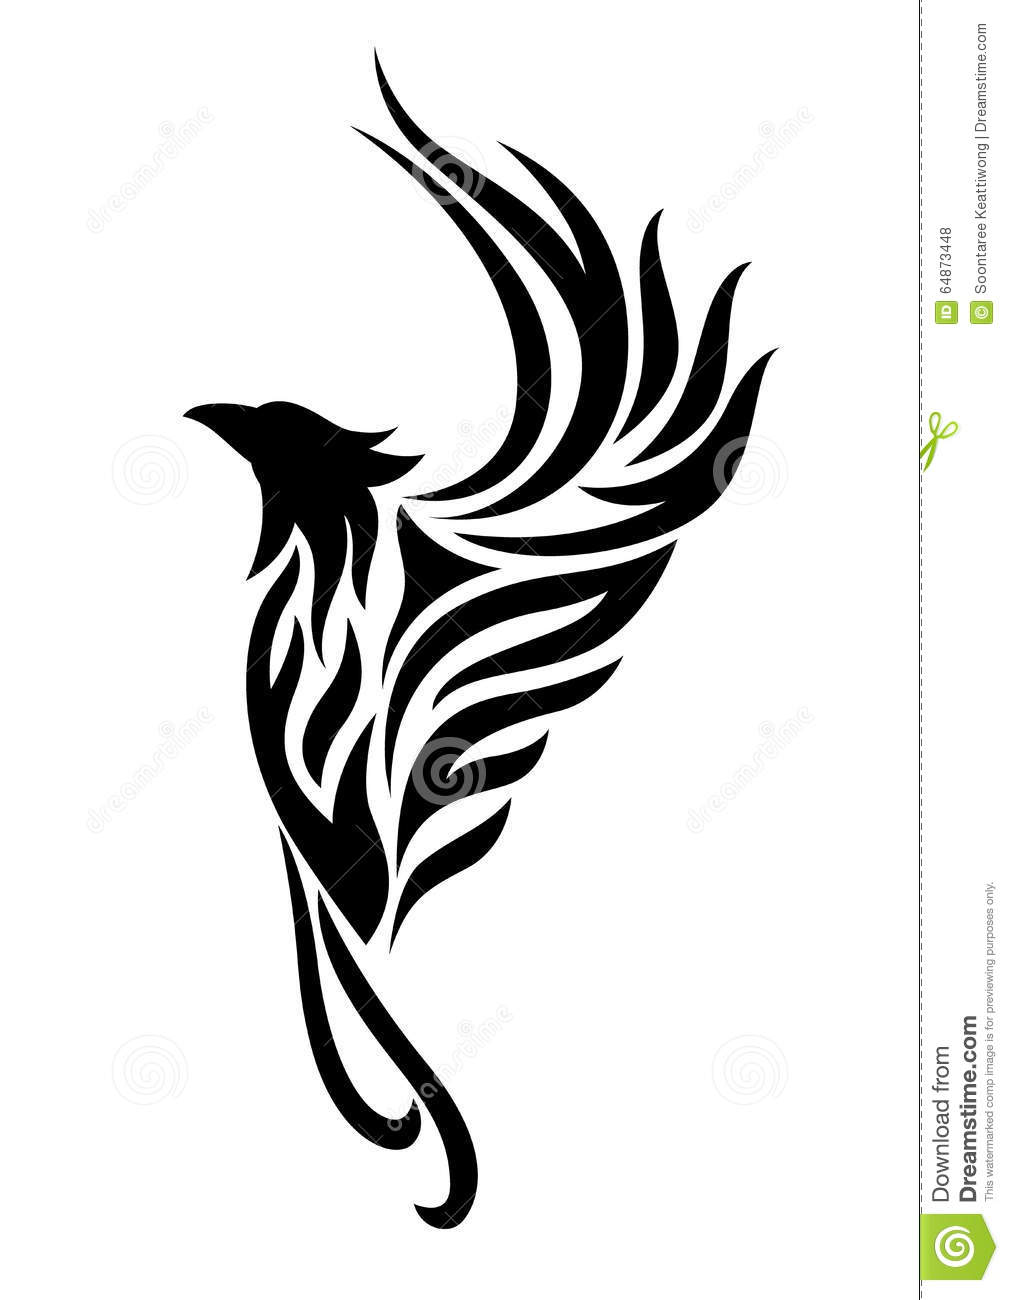 Phoenix Tattoo Clipart Stock Illustration.